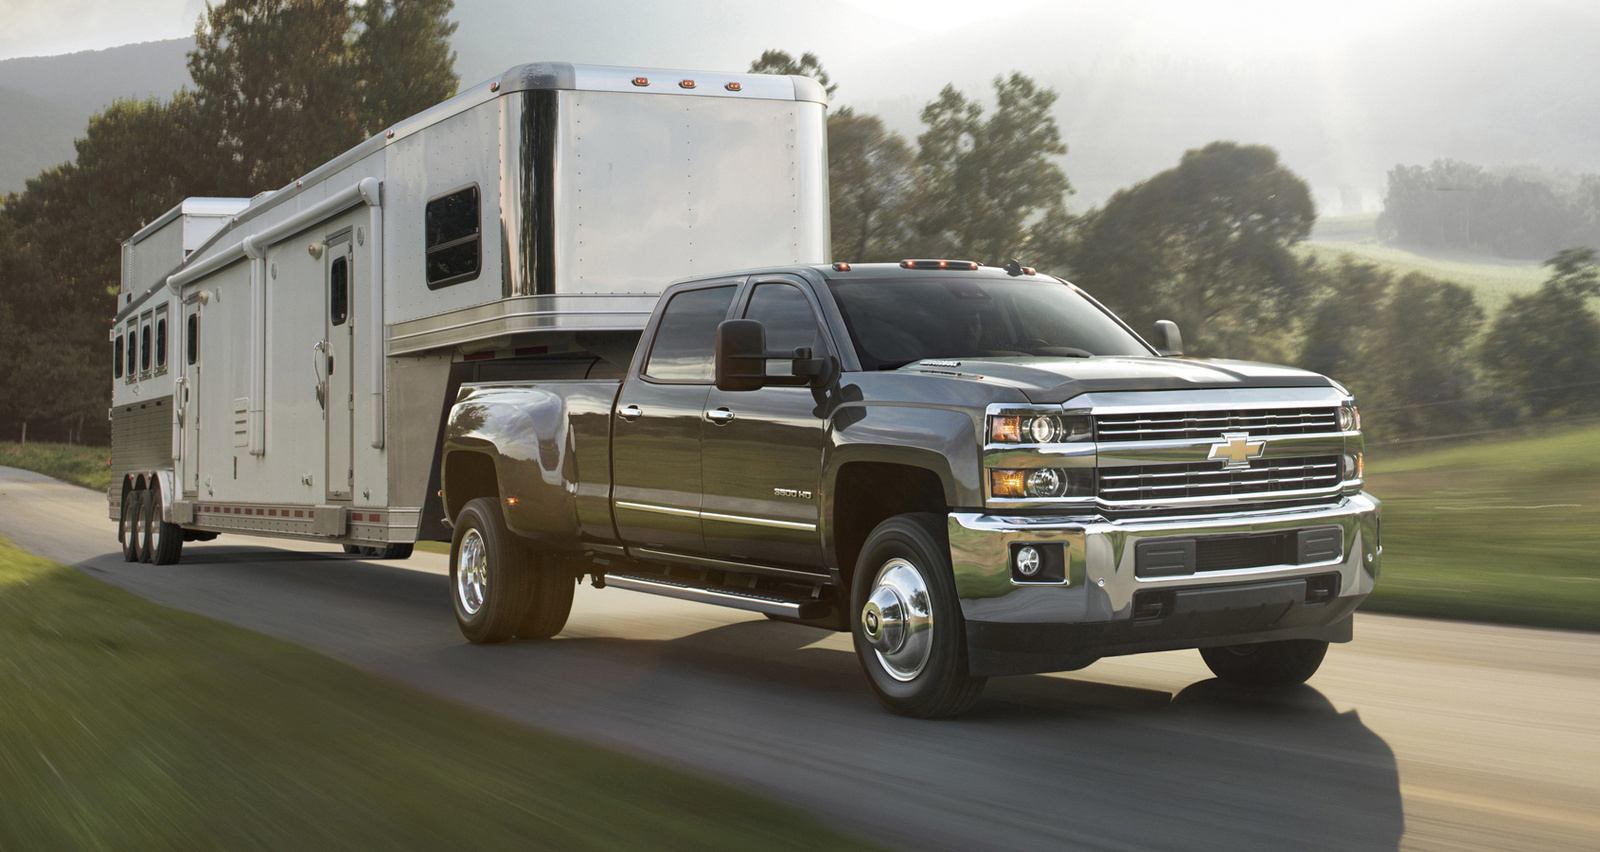 Most Expensive Truck In The World - Chevrolet Silverado 3500HD High Country